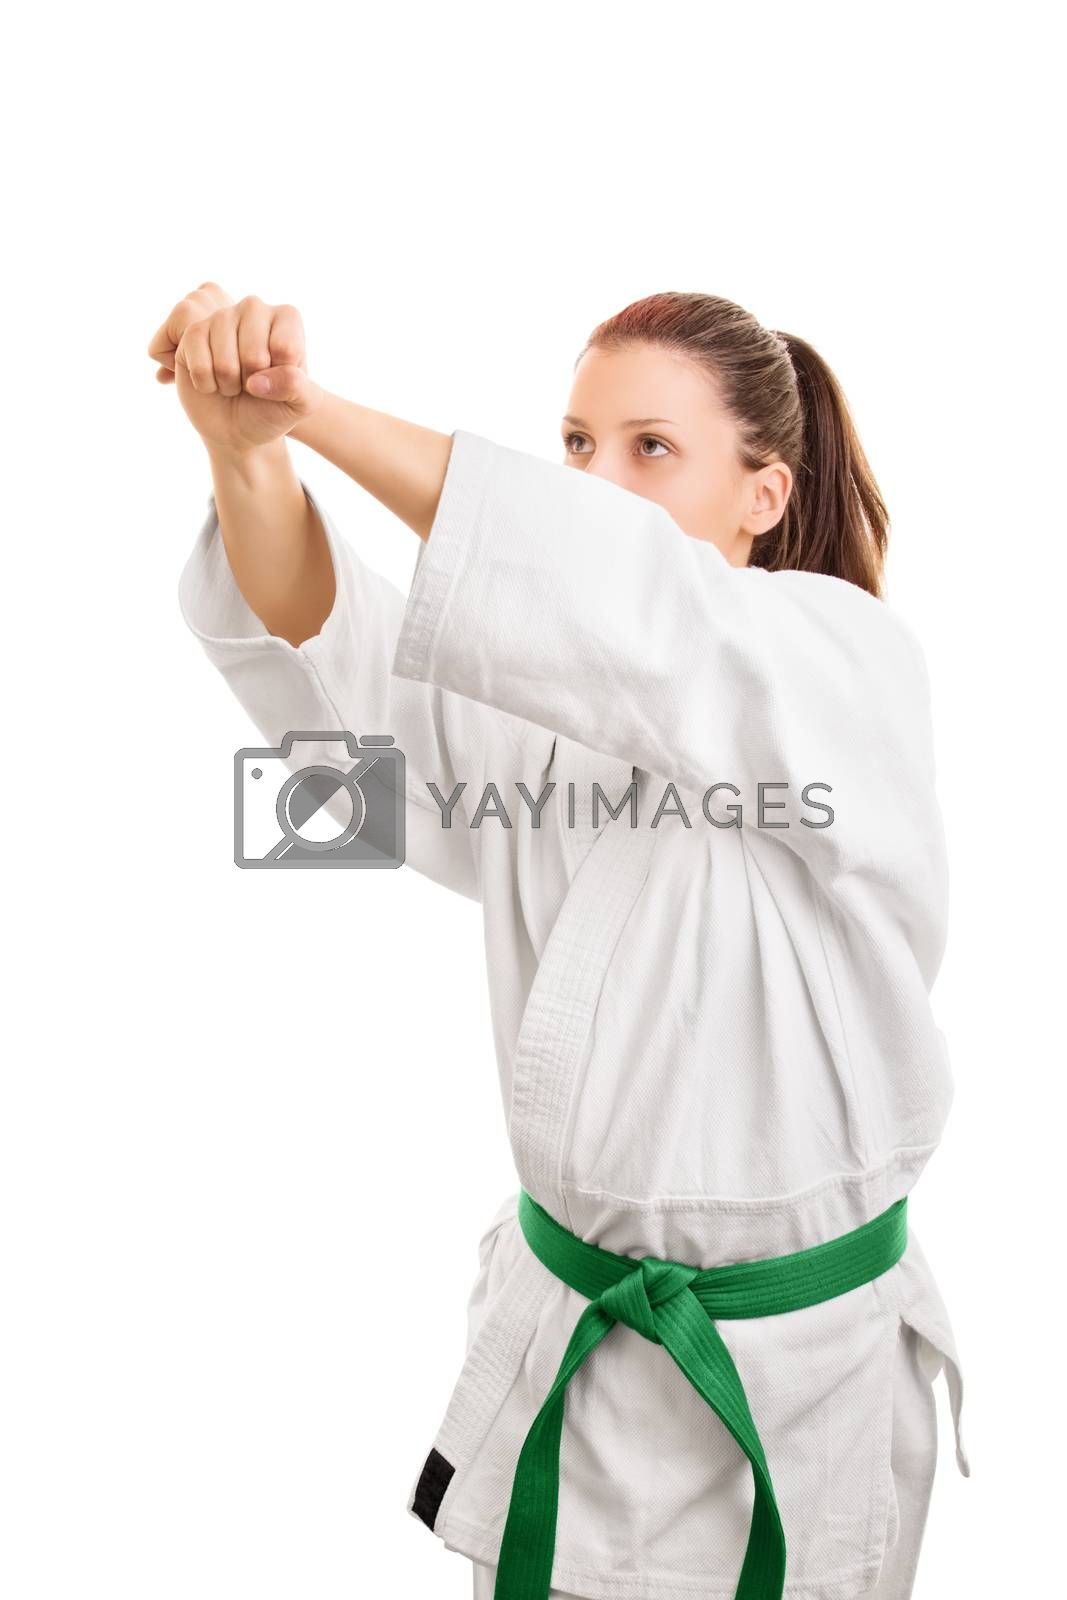 Offense-Defense. Young girl wearing kimono with green belt, practicing defense, isolated on white background.